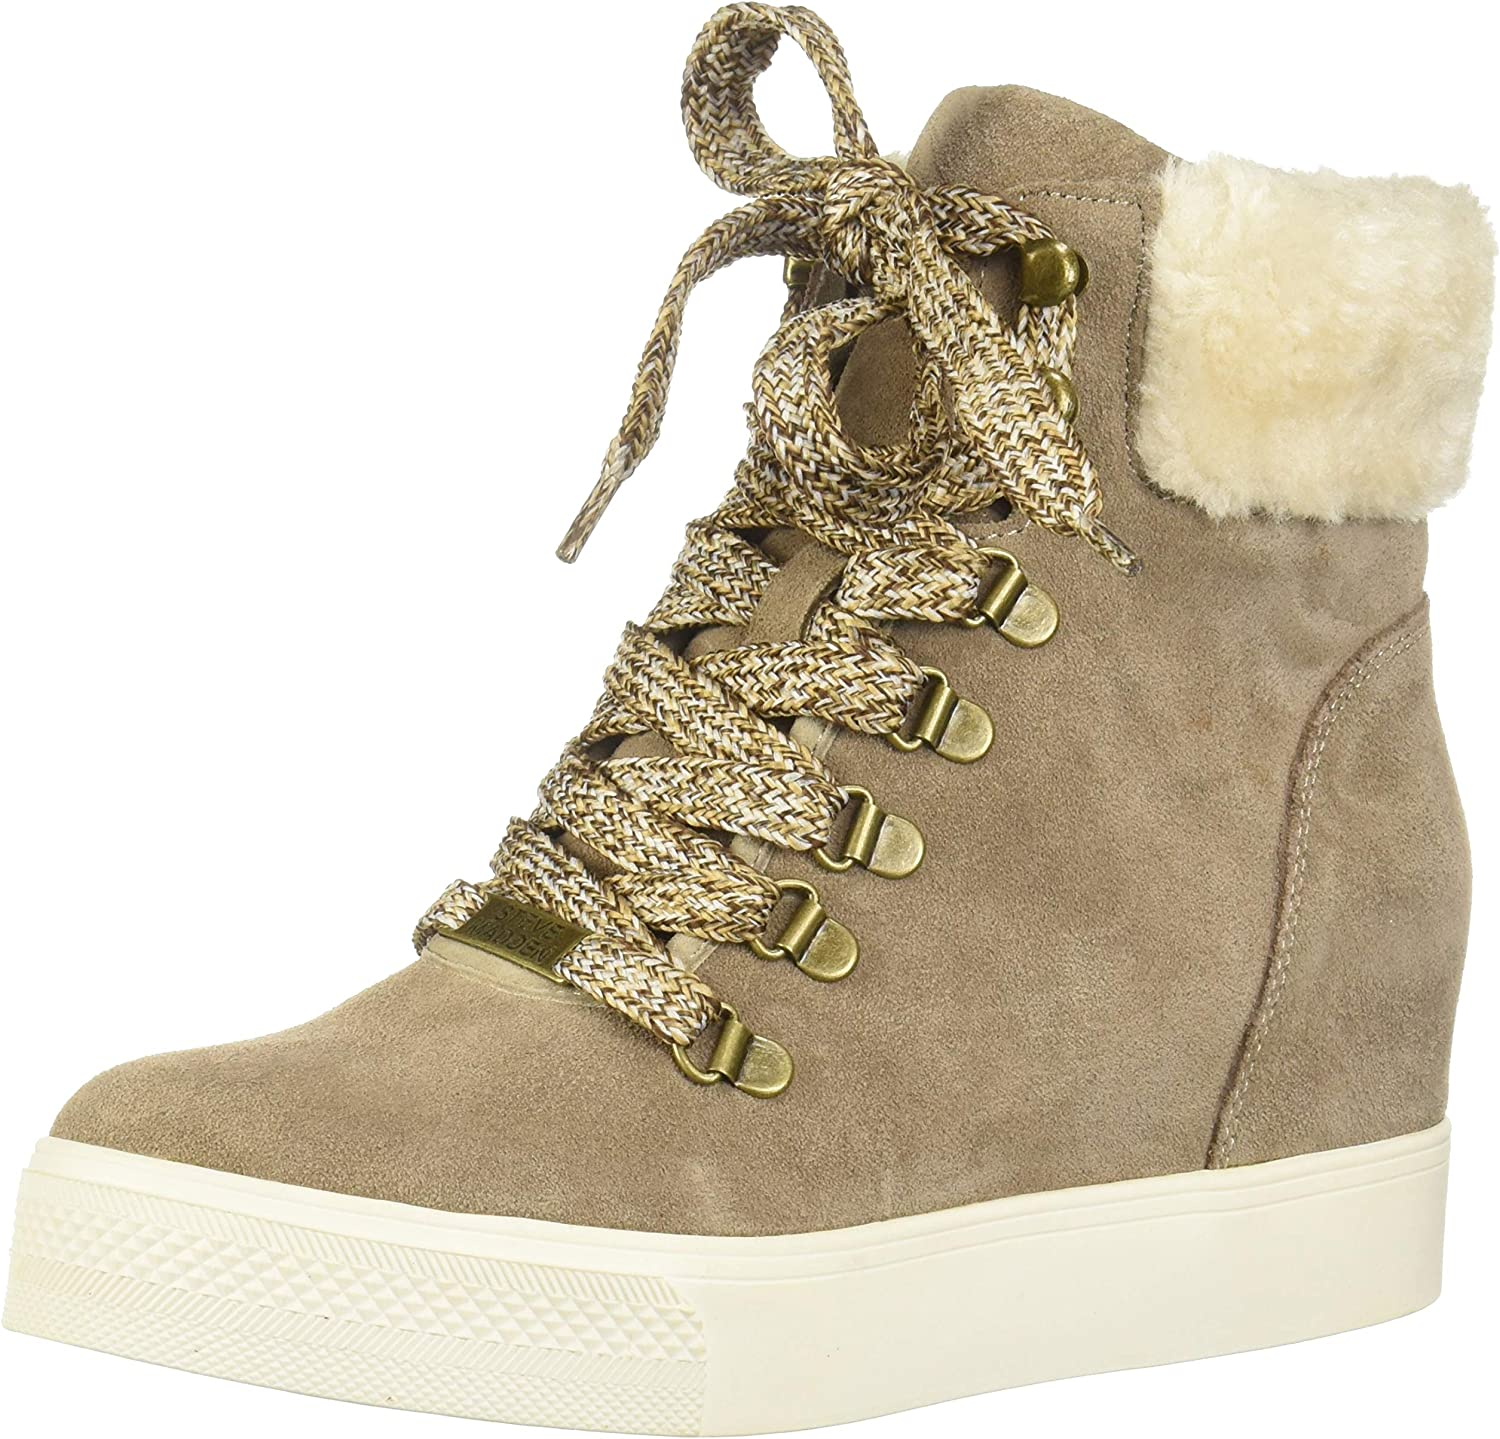 Size 6.0 Steve Madden Womens Windy Leather Closed Toe Ankle Taupe Suede